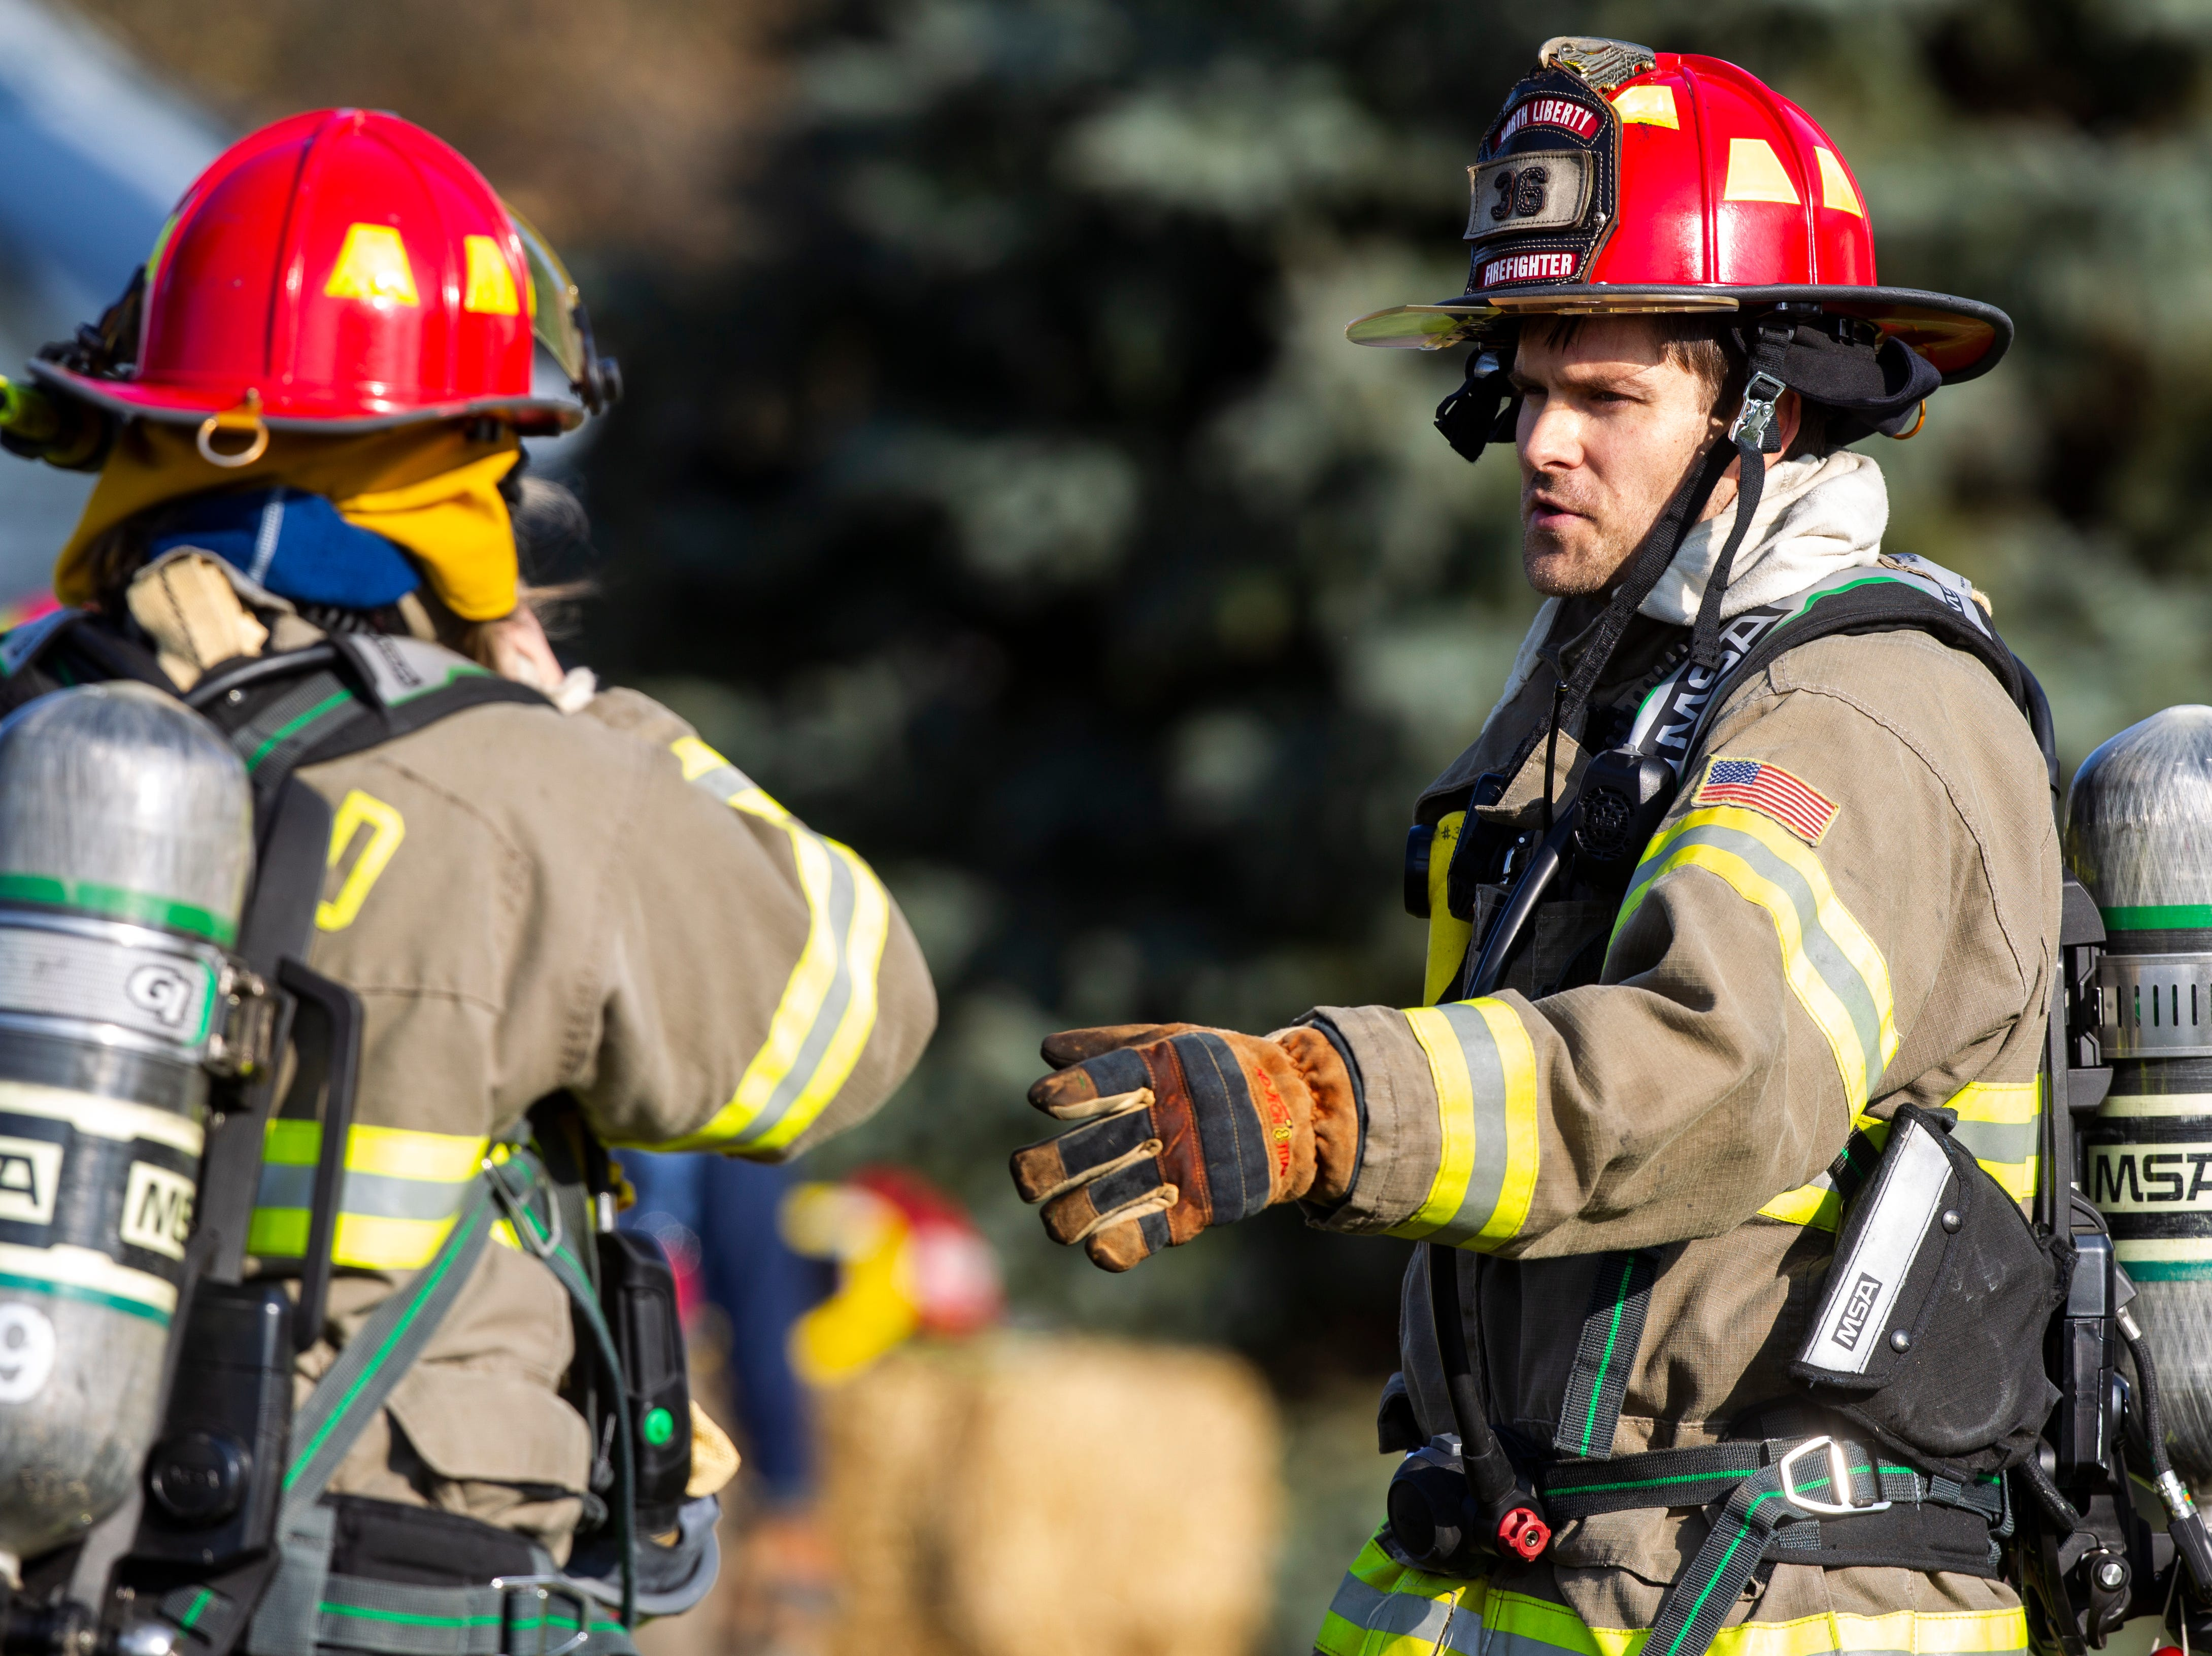 North Liberty Fire Department volunteer firefighter Richard Reasner (right) helps conduct a controlled burn fire training exercise of a farm house on Saturday, Oct. 27, 2018, on the east side of Liberty High School in North Liberty.